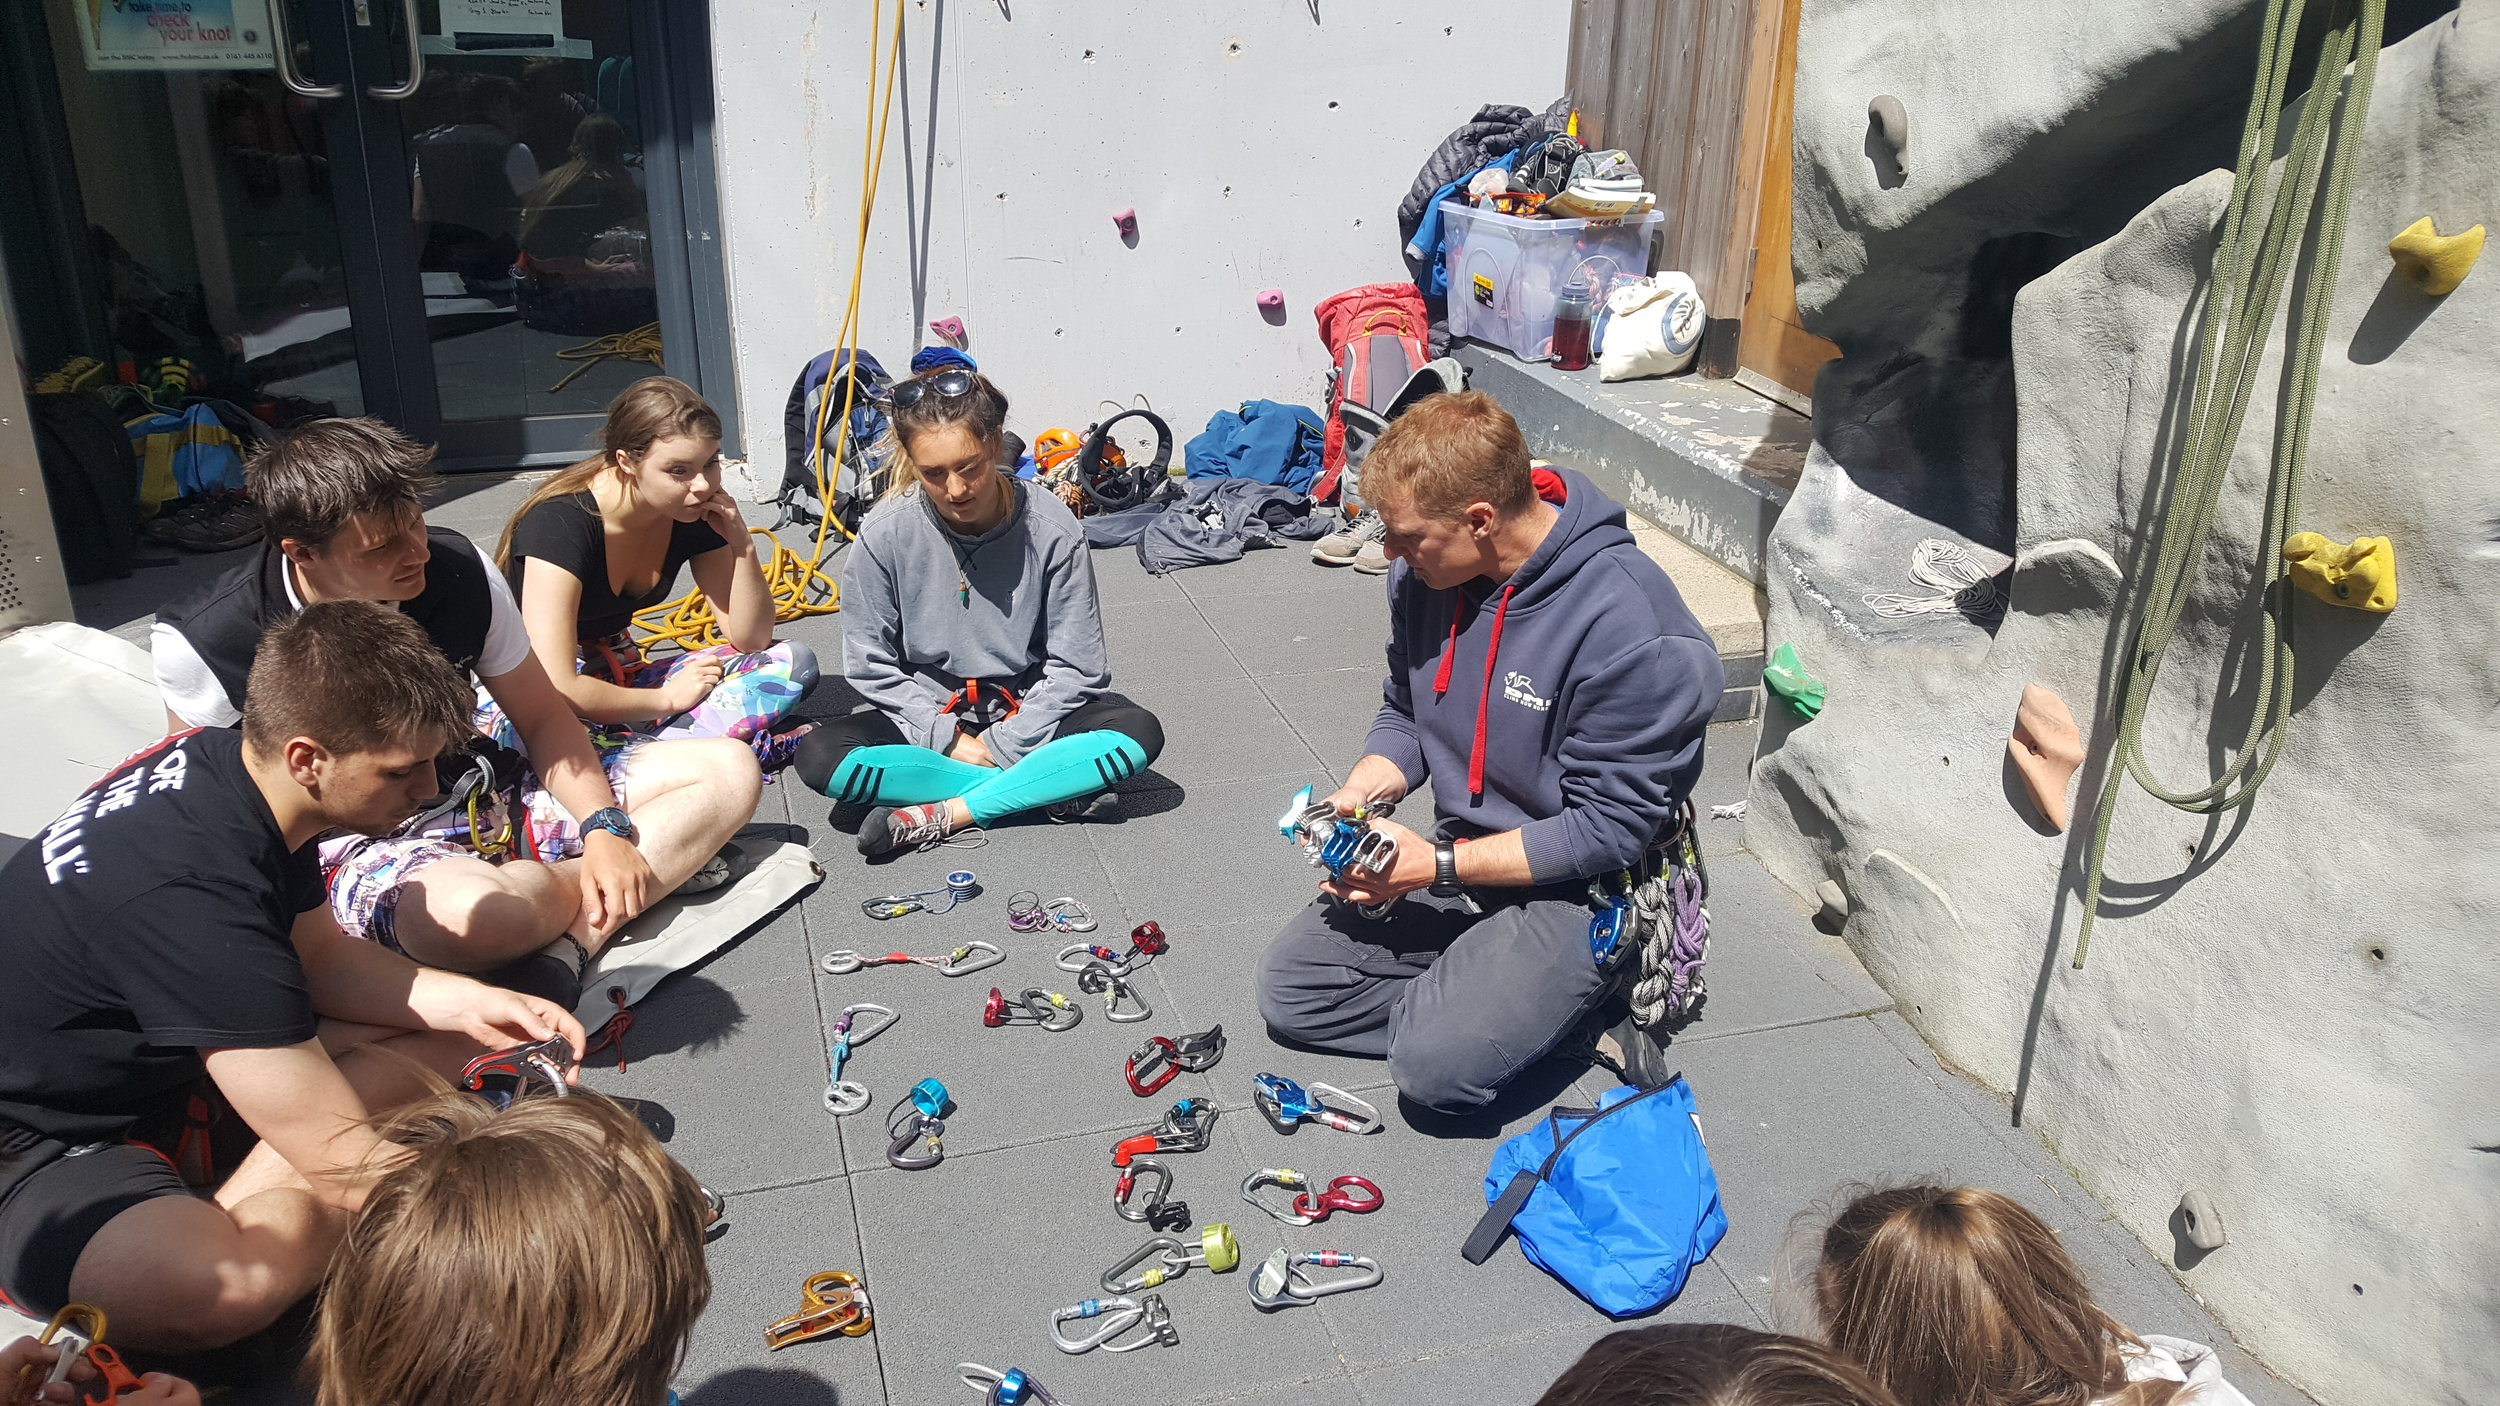 Mark sharing thoughts on belay devices